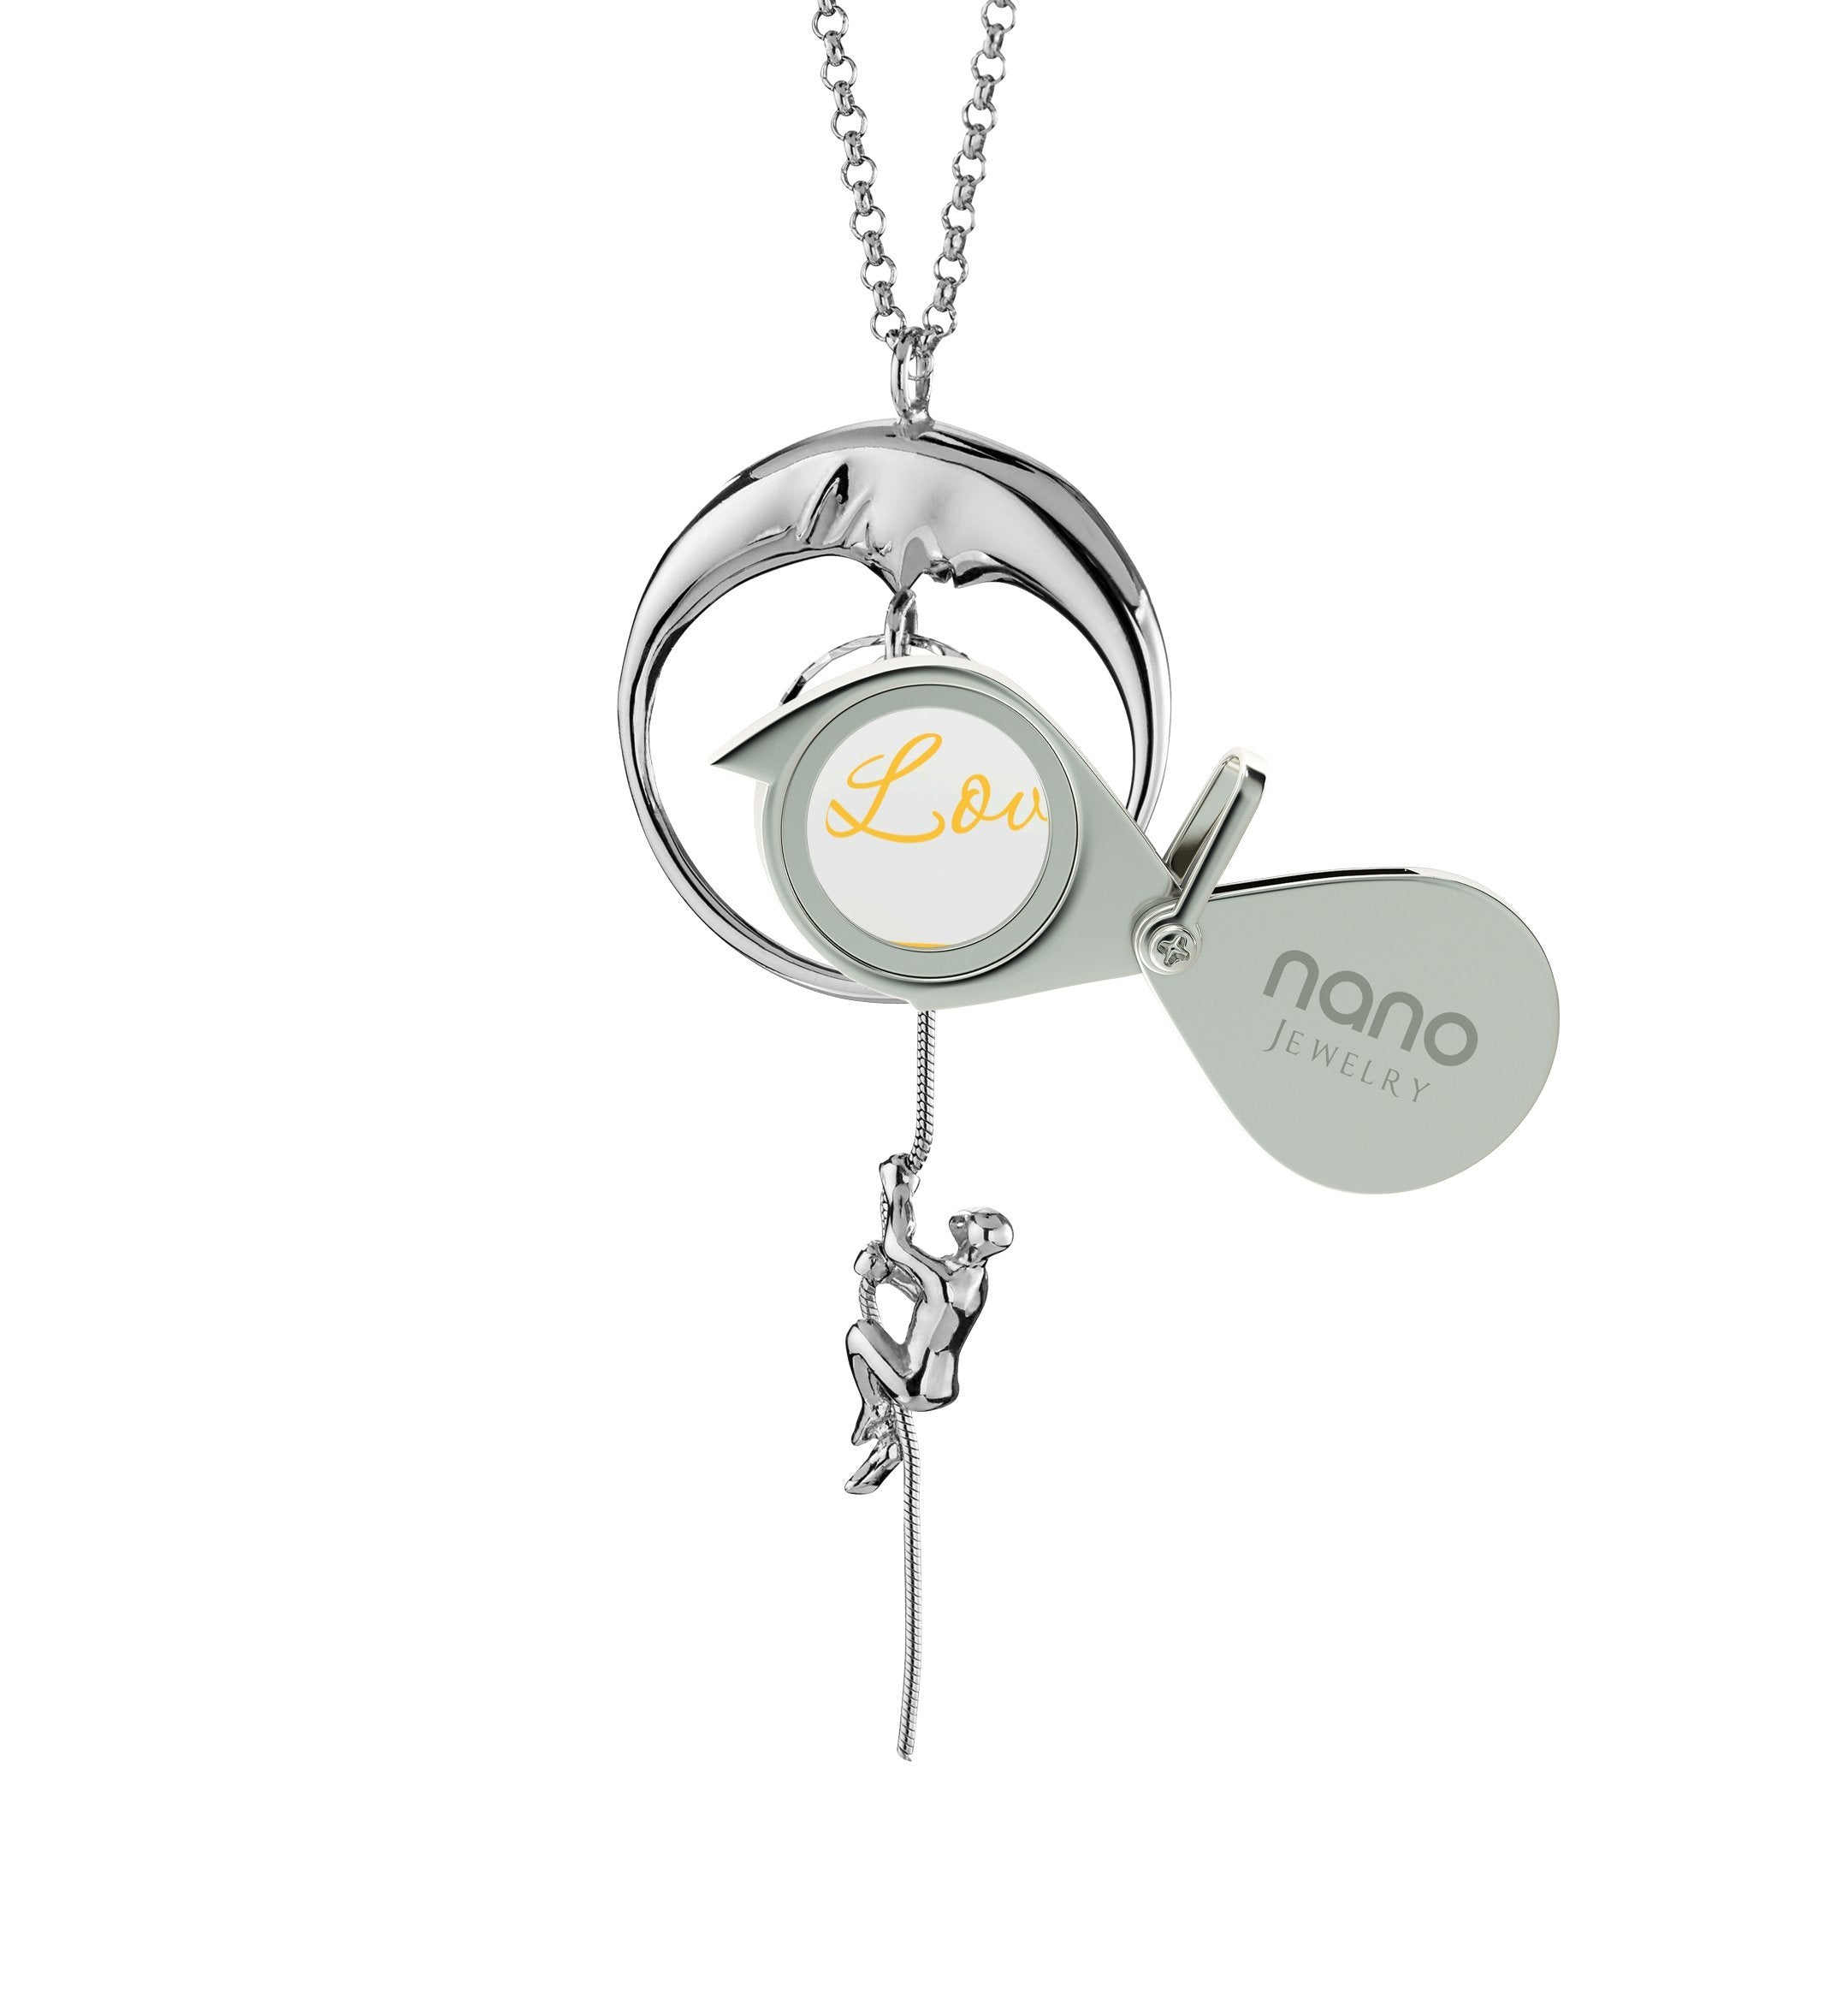 I Love You to the Moon and Back Jewelry: Engraved Necklaces for Her, Perfect Valentines Gift for Girlfriend, Nano Jewelry